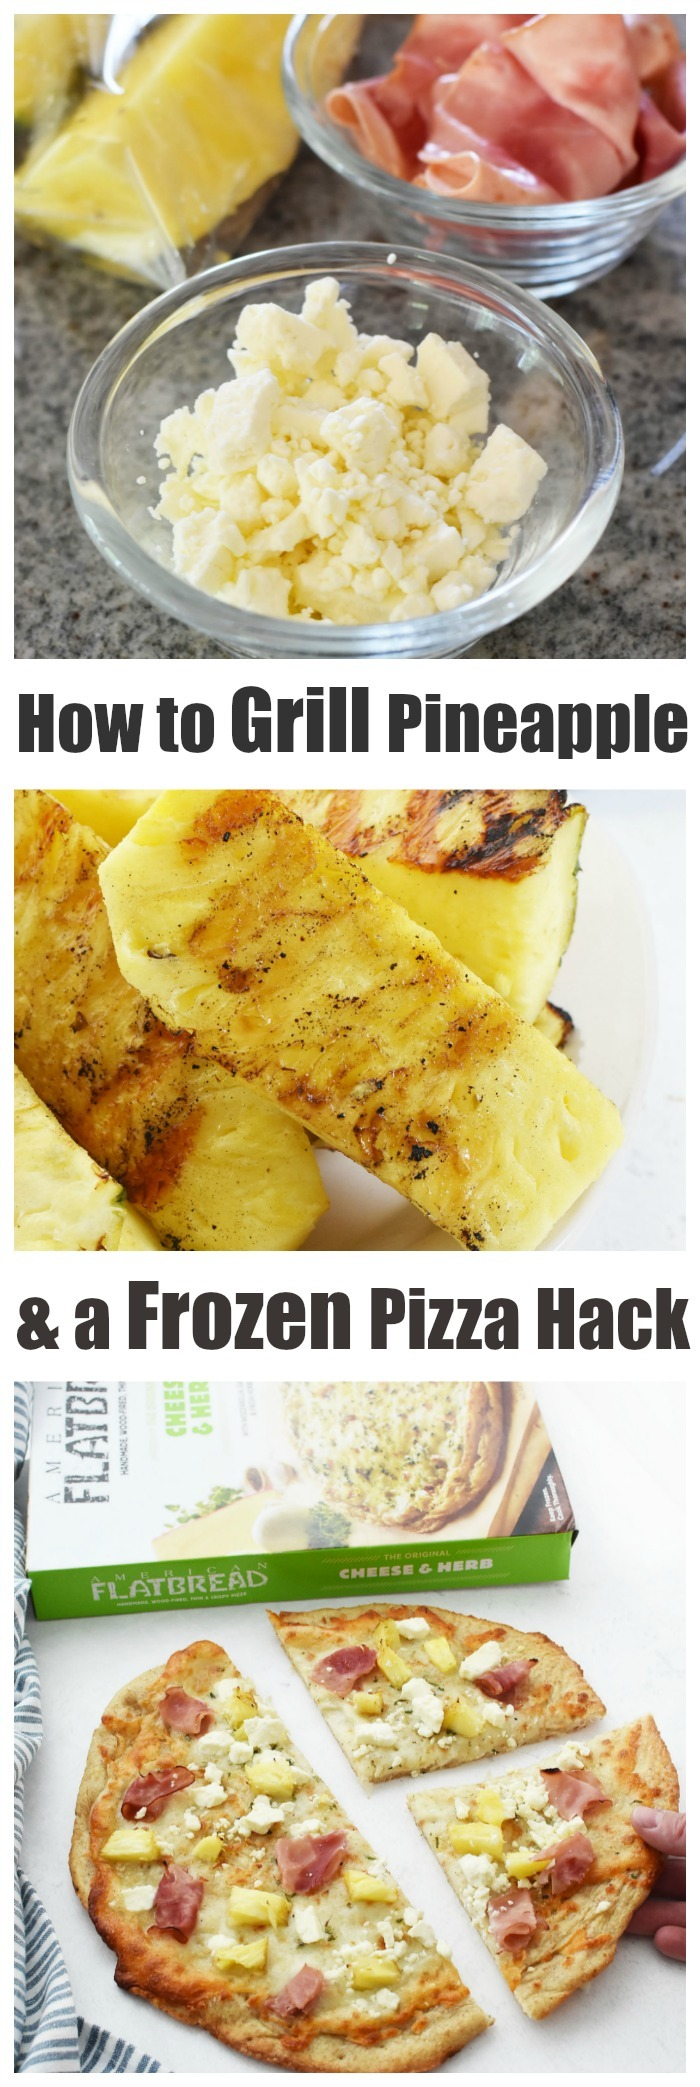 Grilled Pineapple & Ham Pizza Hack